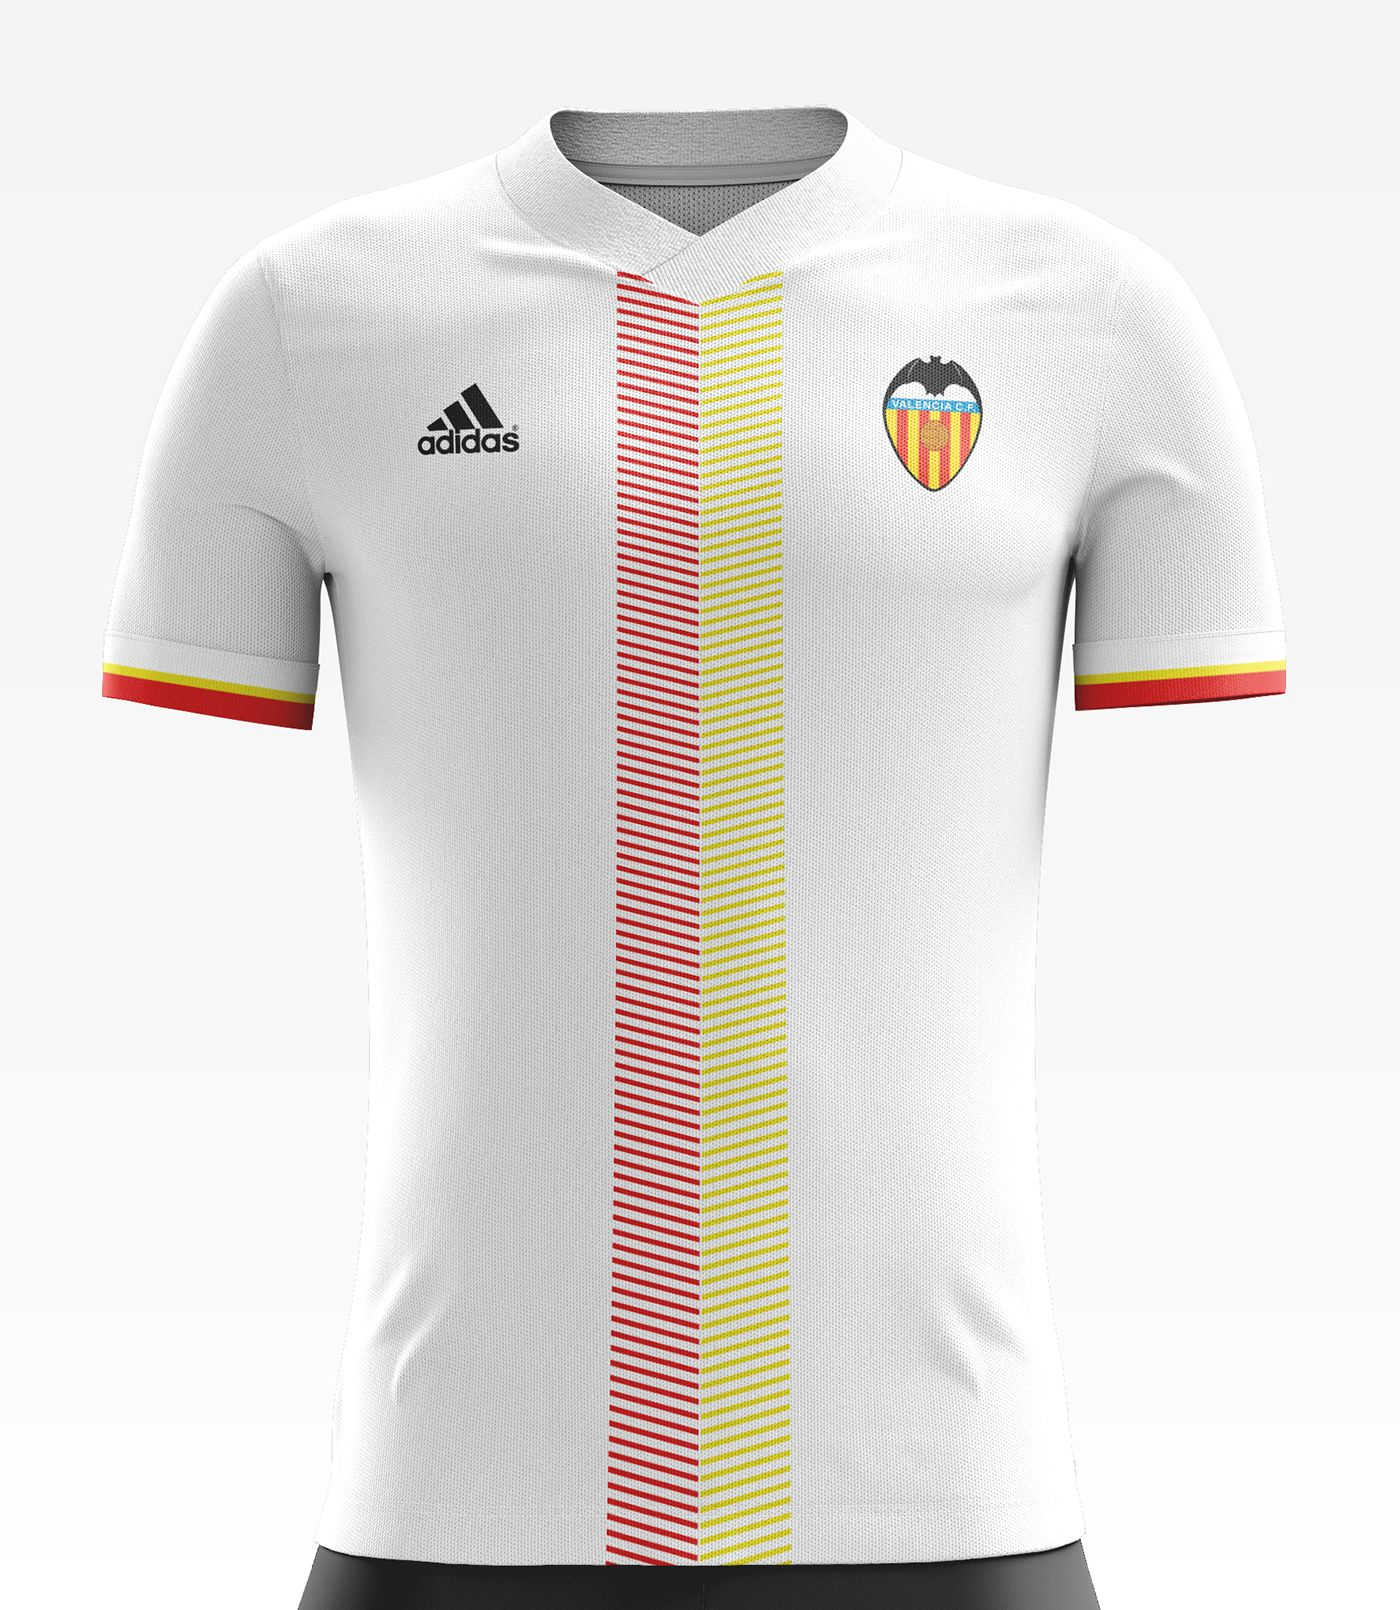 19f71a9f5bb I designed football kits for Valencia C.F. for the upcoming season 17 18.